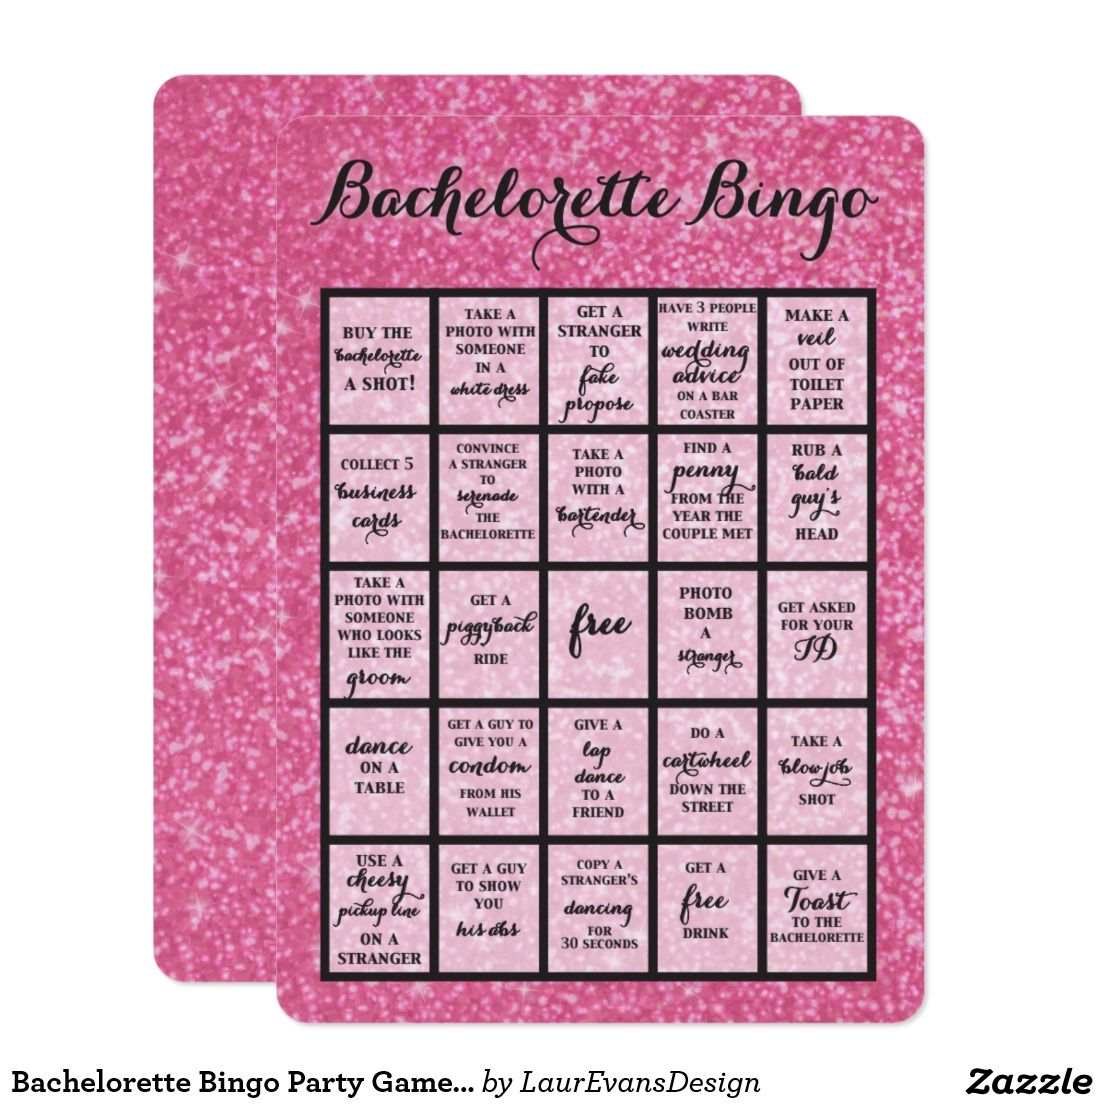 Bachelorette Bingo Party Game in Hot Pink Card | Bachelorette ...